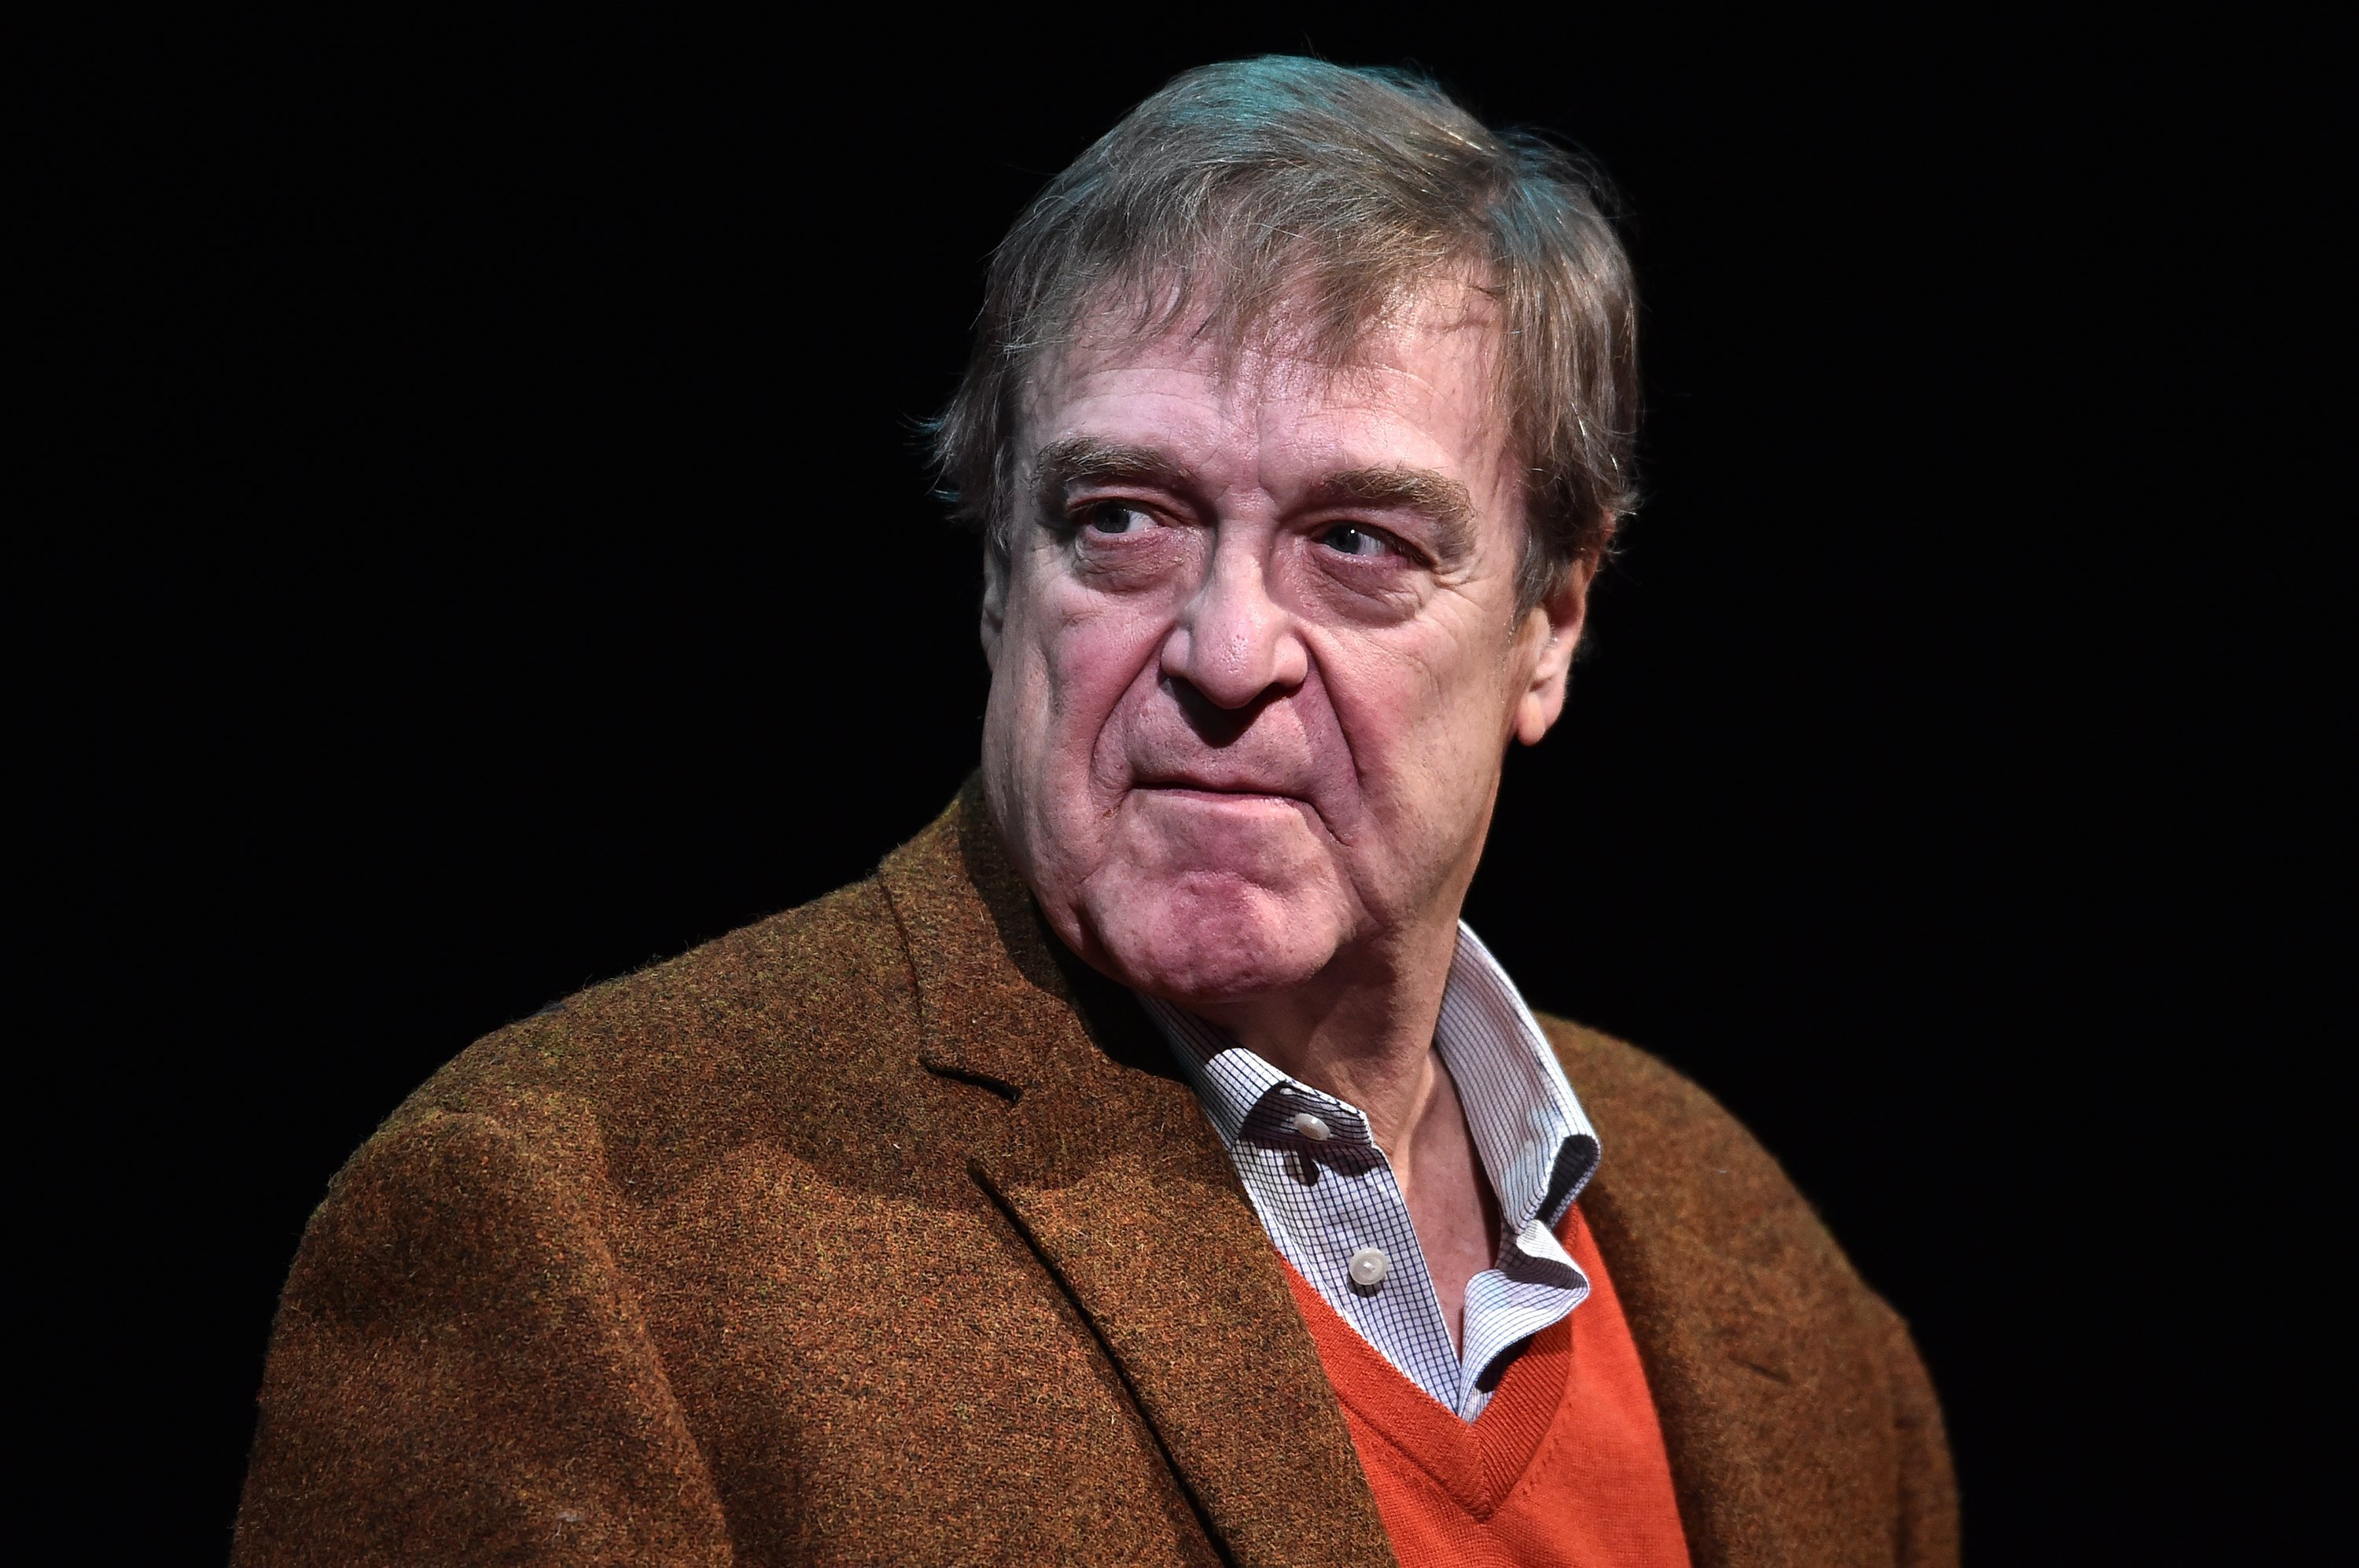 John Goodman attends the SAG-AFTRA Foundation Conversation in New York City on January 22, 2019 | Photo: Getty Images